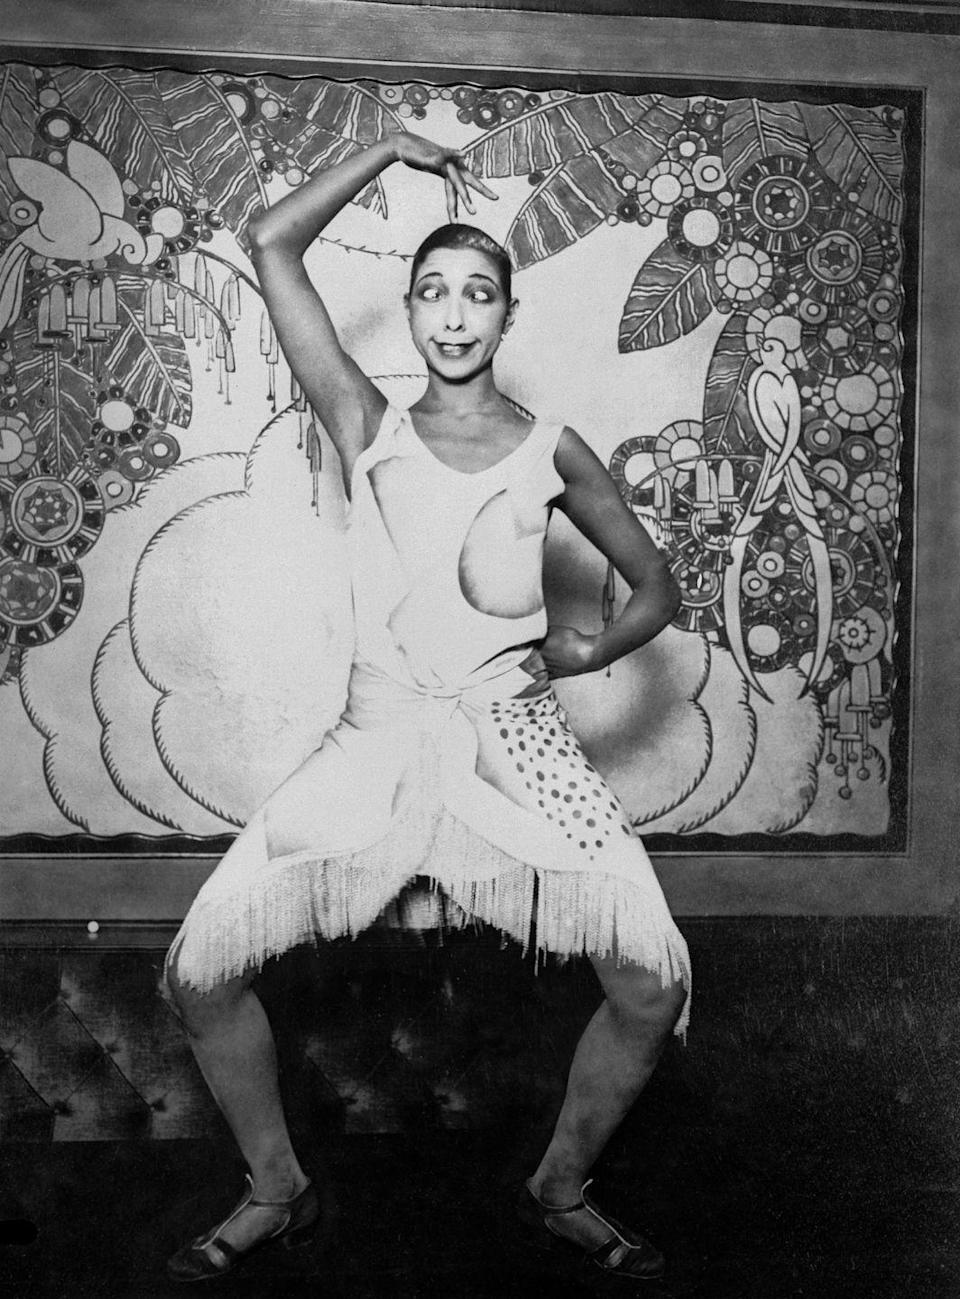 """<p>In a 1926 performance at the popular concert hall Folies Bergére, Baker <a href=""""https://www.biography.com/performer/josephine-baker"""" rel=""""nofollow noopener"""" target=""""_blank"""" data-ylk=""""slk:wore a banana skirt during La Folie du Jour"""" class=""""link rapid-noclick-resp"""">wore a banana skirt during <em>La Folie du Jour</em></a>. The outfit became synonymous with Baker's on-stage persona and one of the most iconic wardrobe choices of the era.</p>"""